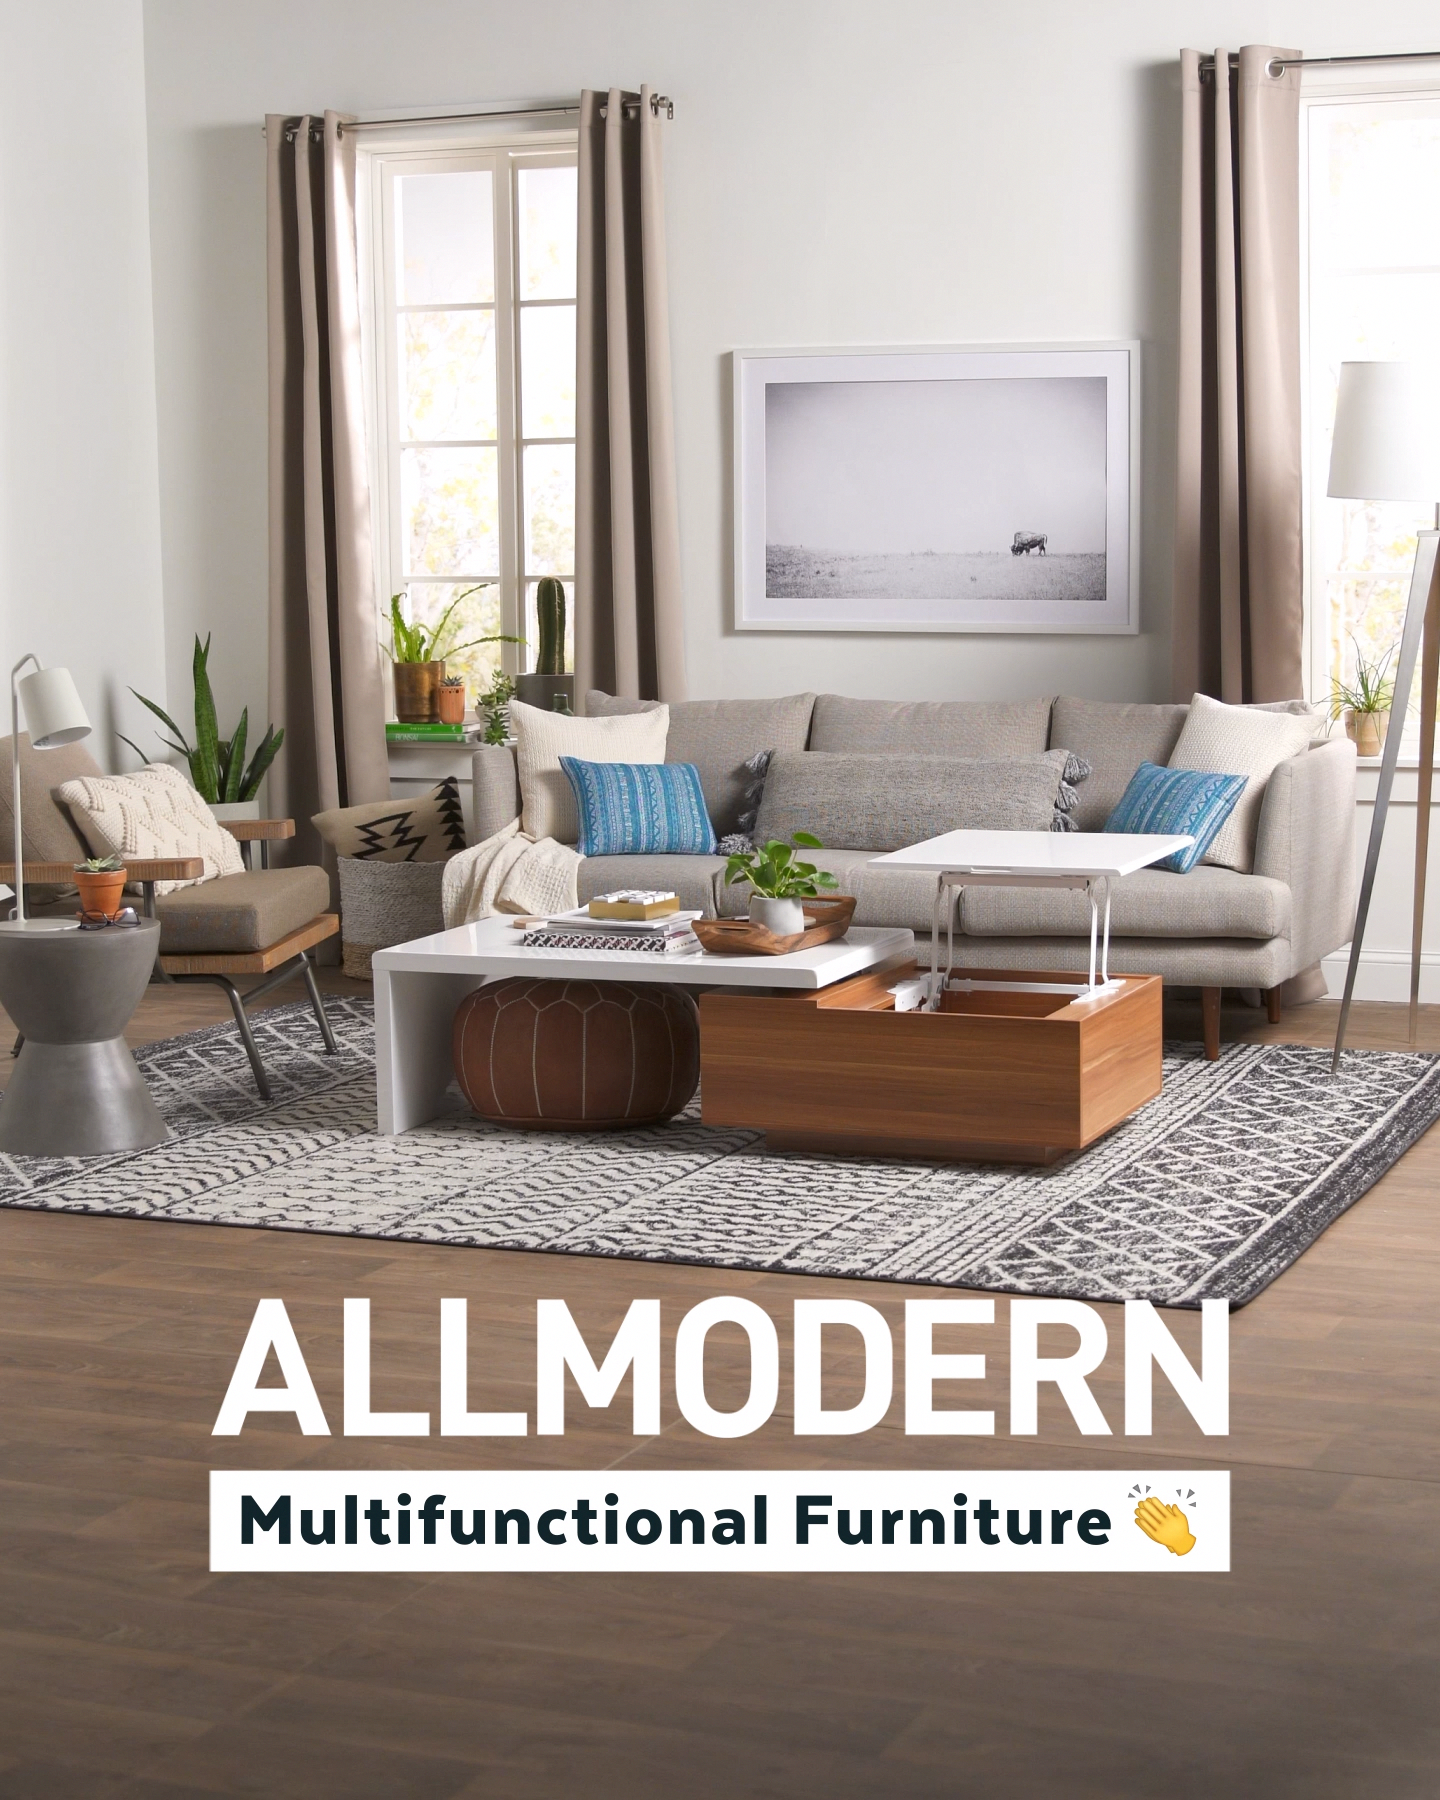 Shop Allmodern For Up To 65 Off Modern Furniture And Free Shipping Allmodern Has The 2 In 1 Furniture You Need Home Living Room Living Room Designs Furniture